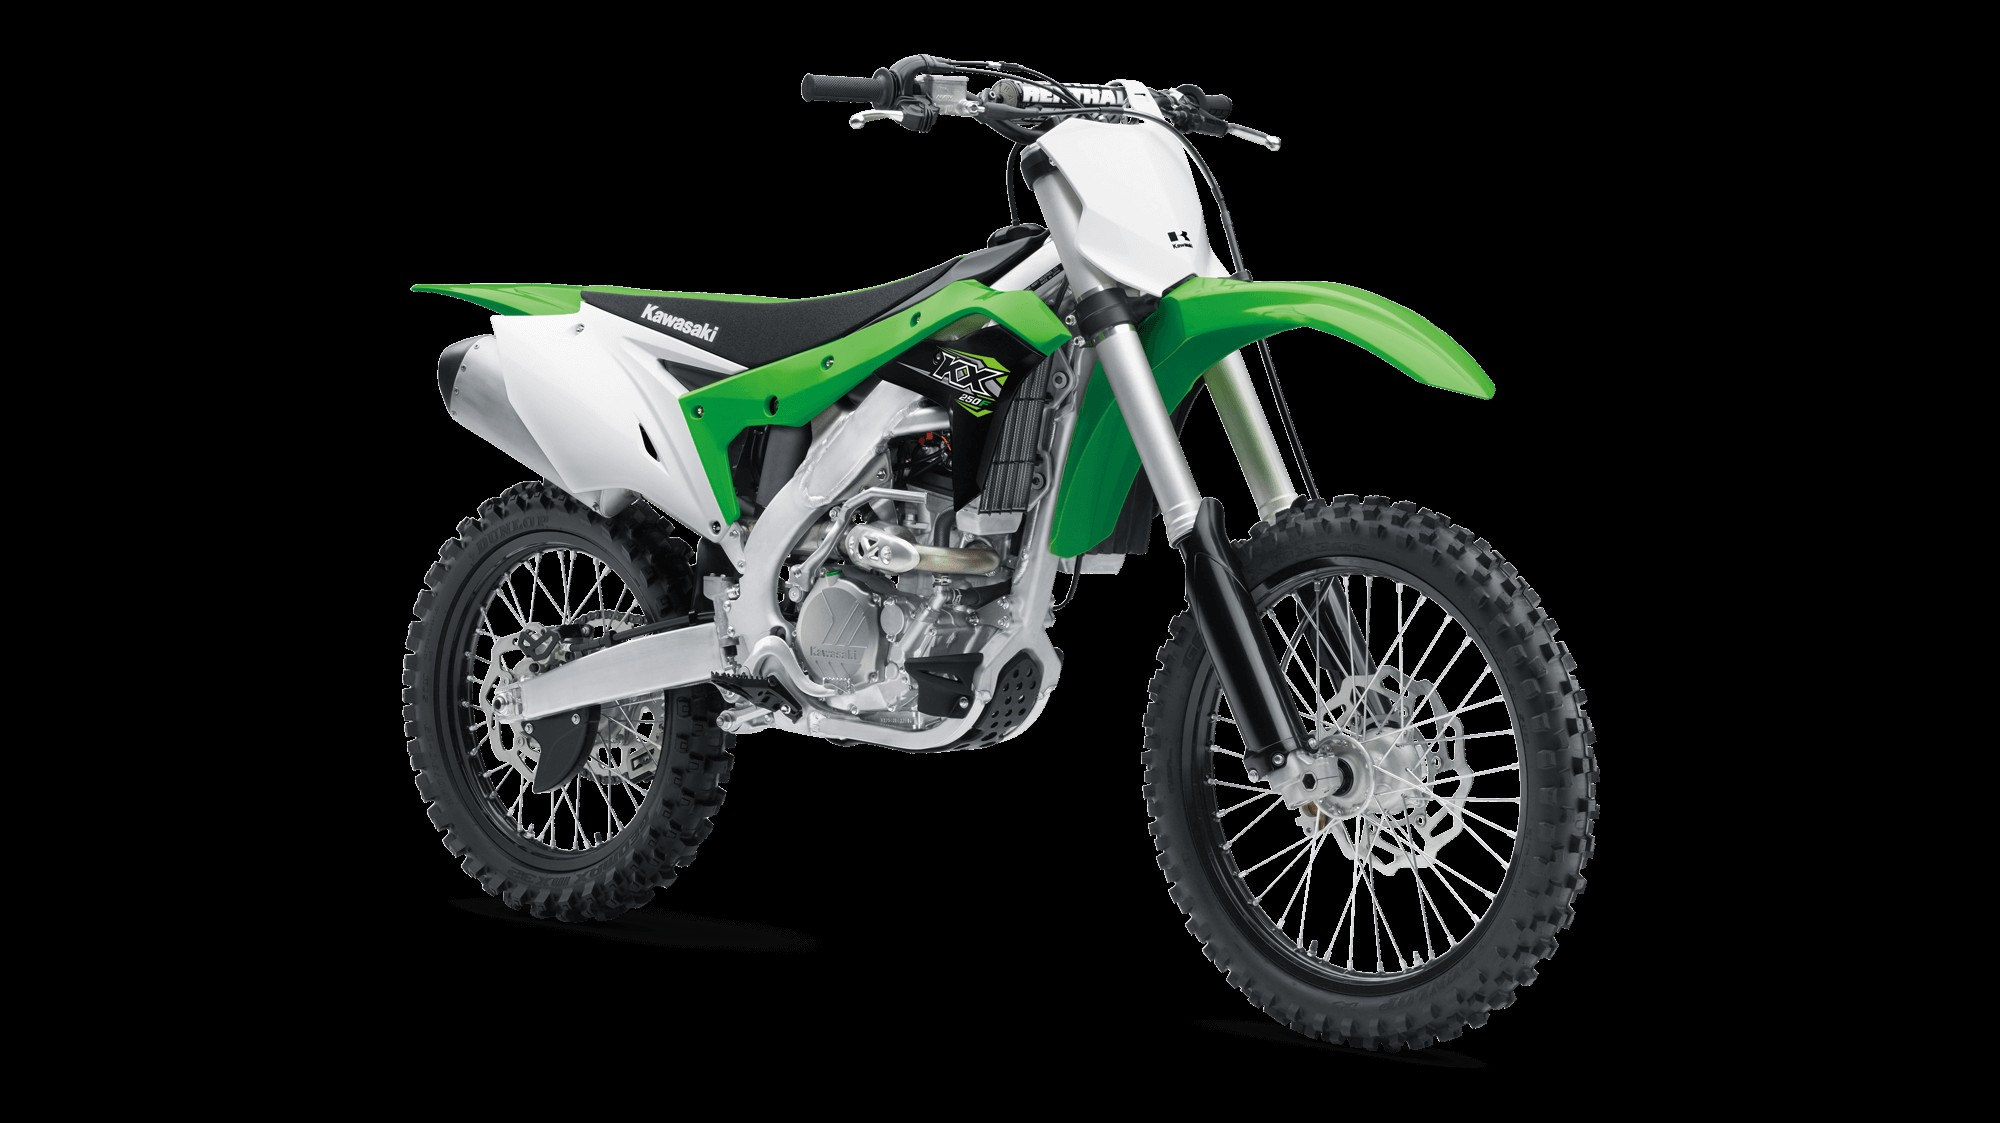 Kx 250 Engine Diagram 2018 Kx™250f Kx™ Motorcycle by Kawasaki Of Kx 250 Engine Diagram